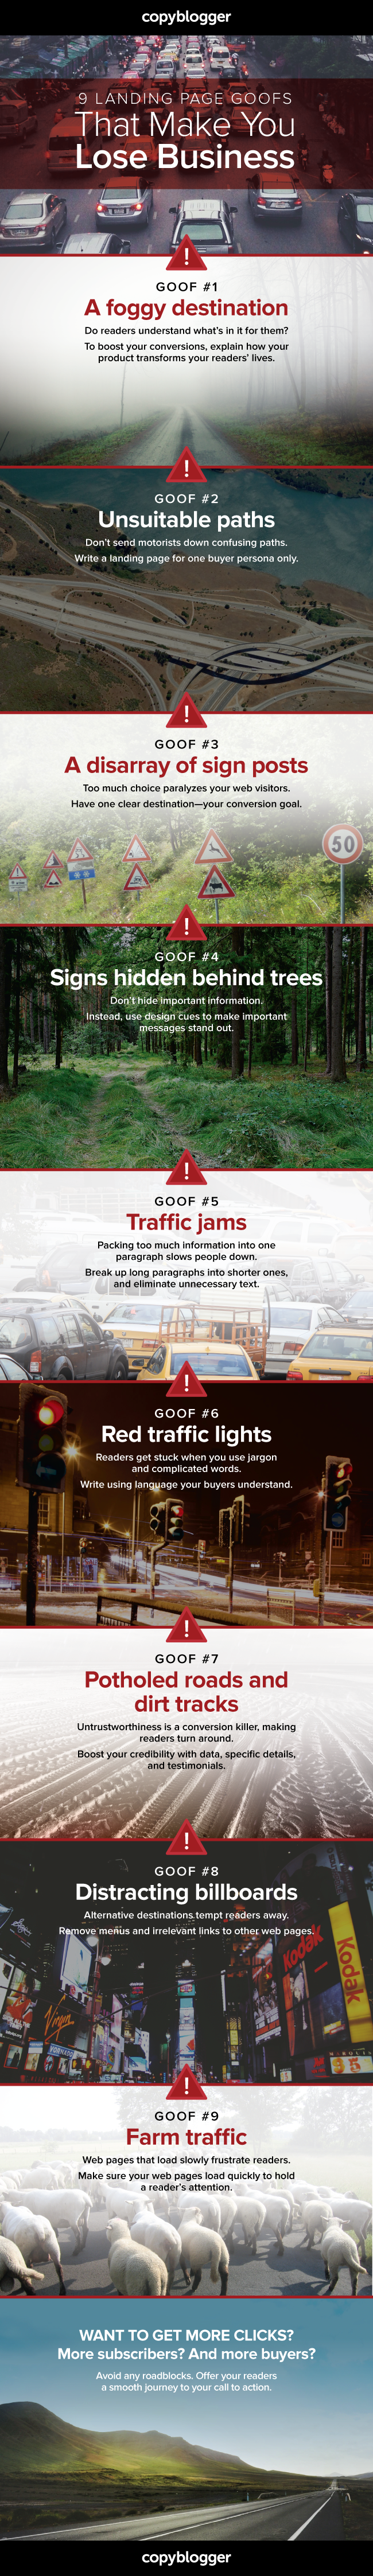 copyblogger-landing-page-goofs-infographic